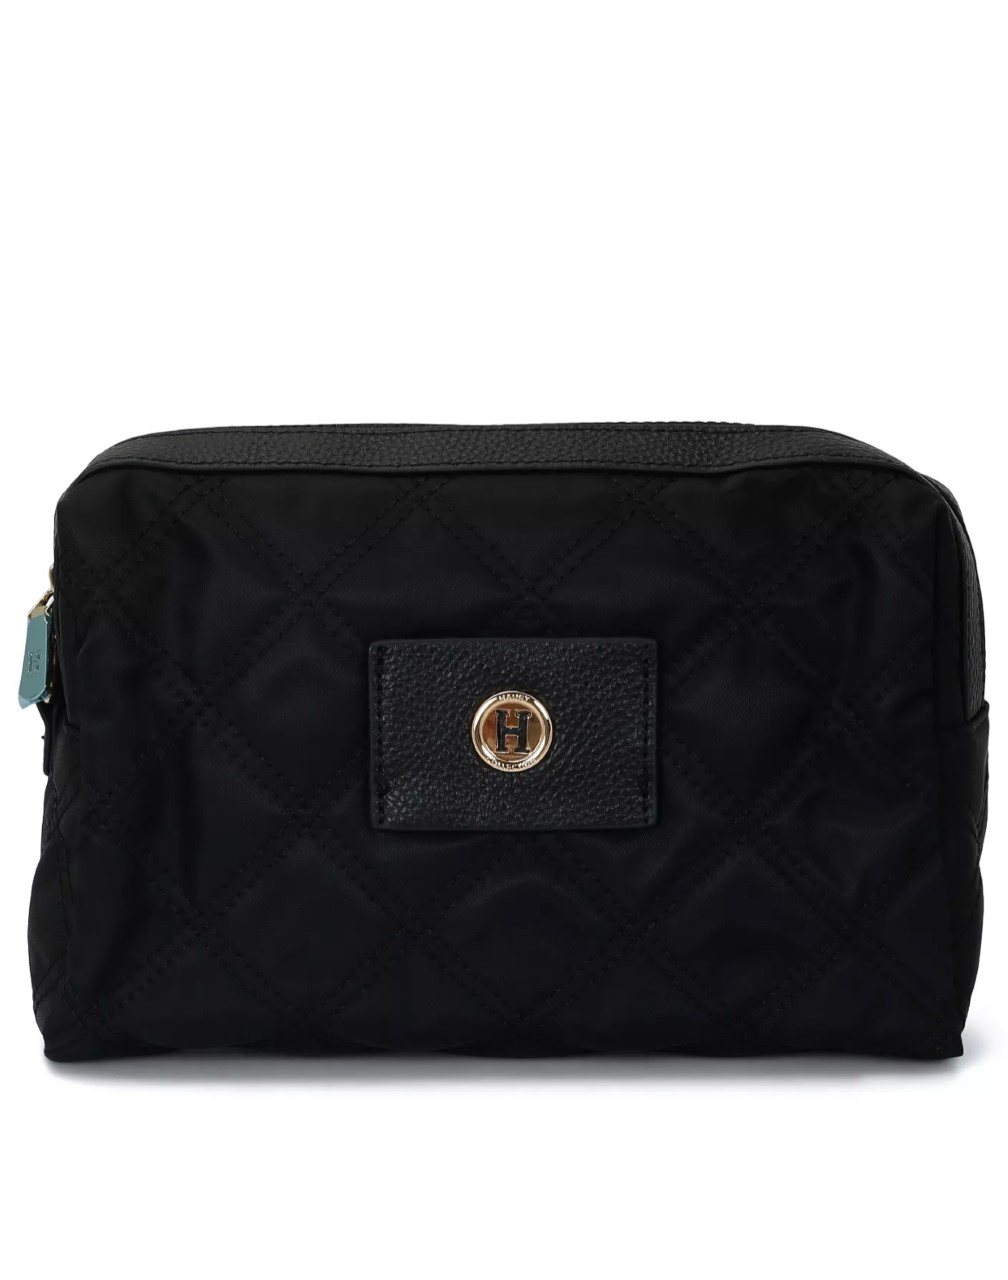 Haust Quilted toiletbag Toalettveske